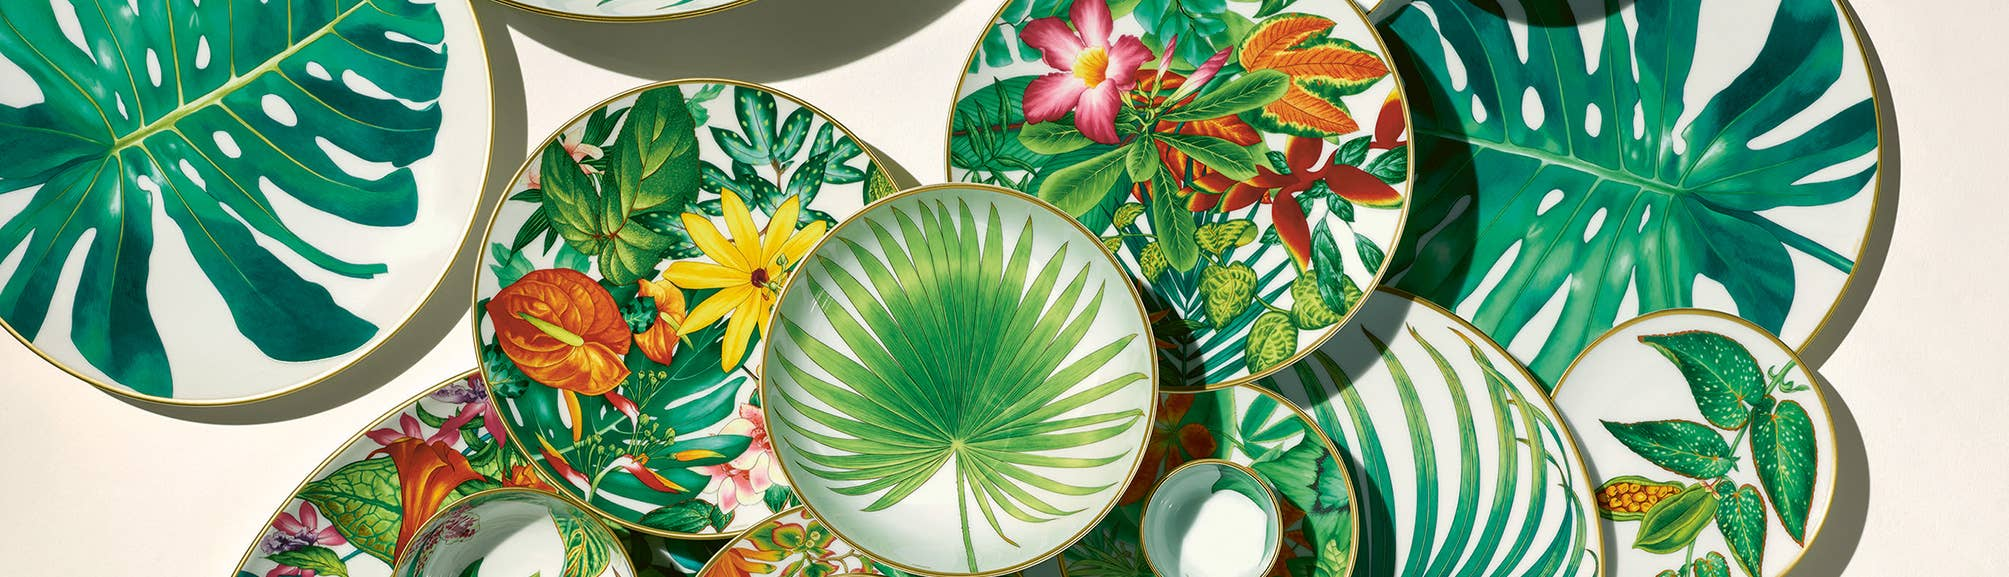 Floral themed plates and bowls from Hermès Passifolia collection